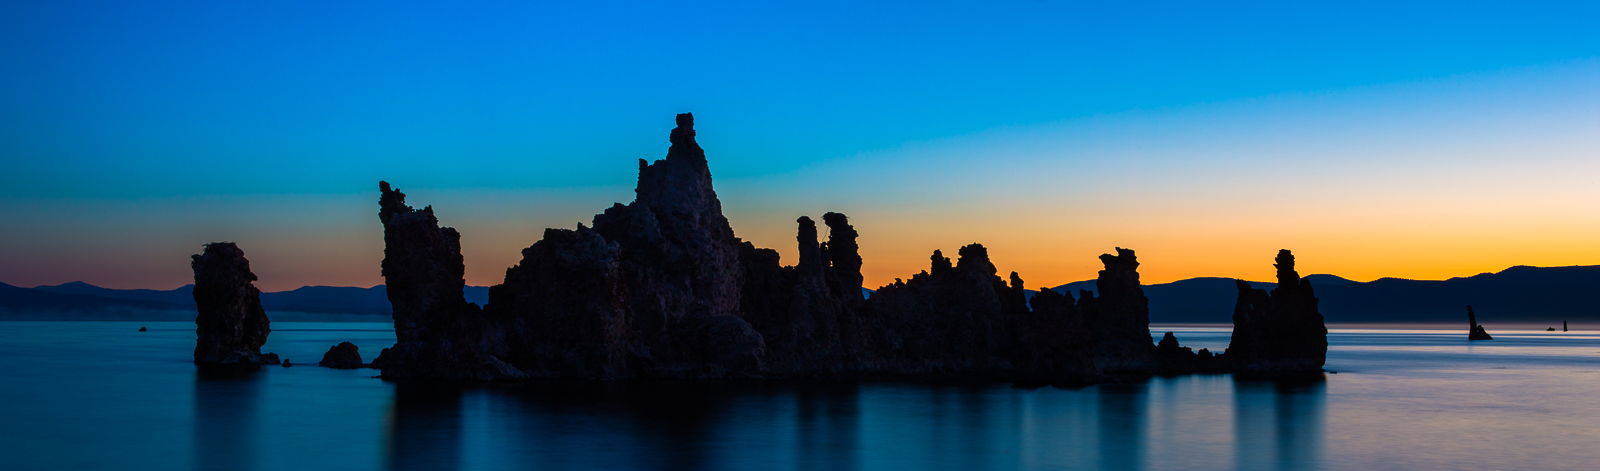 Twighlight Tufa,Horizontal,panoramic,blue,green,pink,Mono lake, water,Sunrise,Scatter,Lake, photo